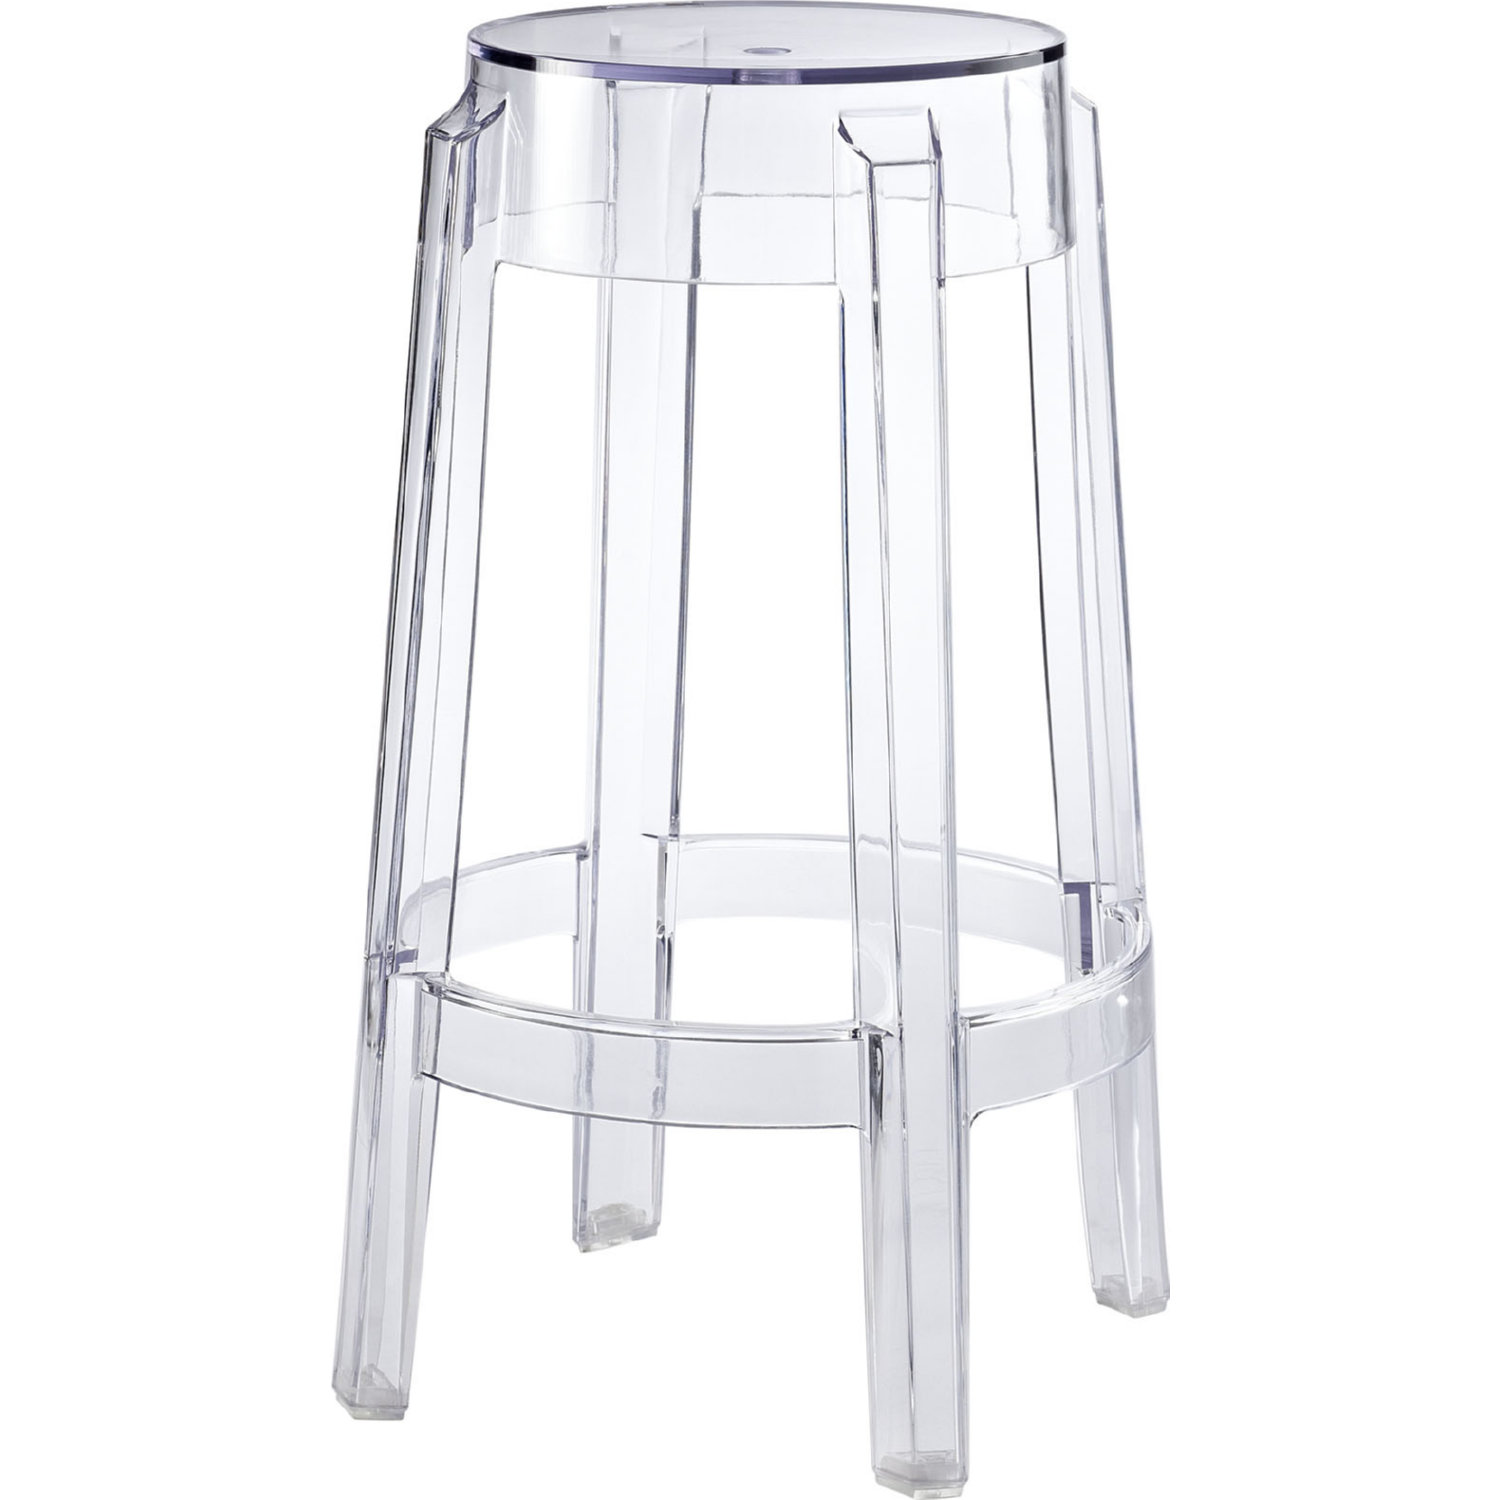 Modway Eei 171 Clr Casper Counter Height Stool In Clear